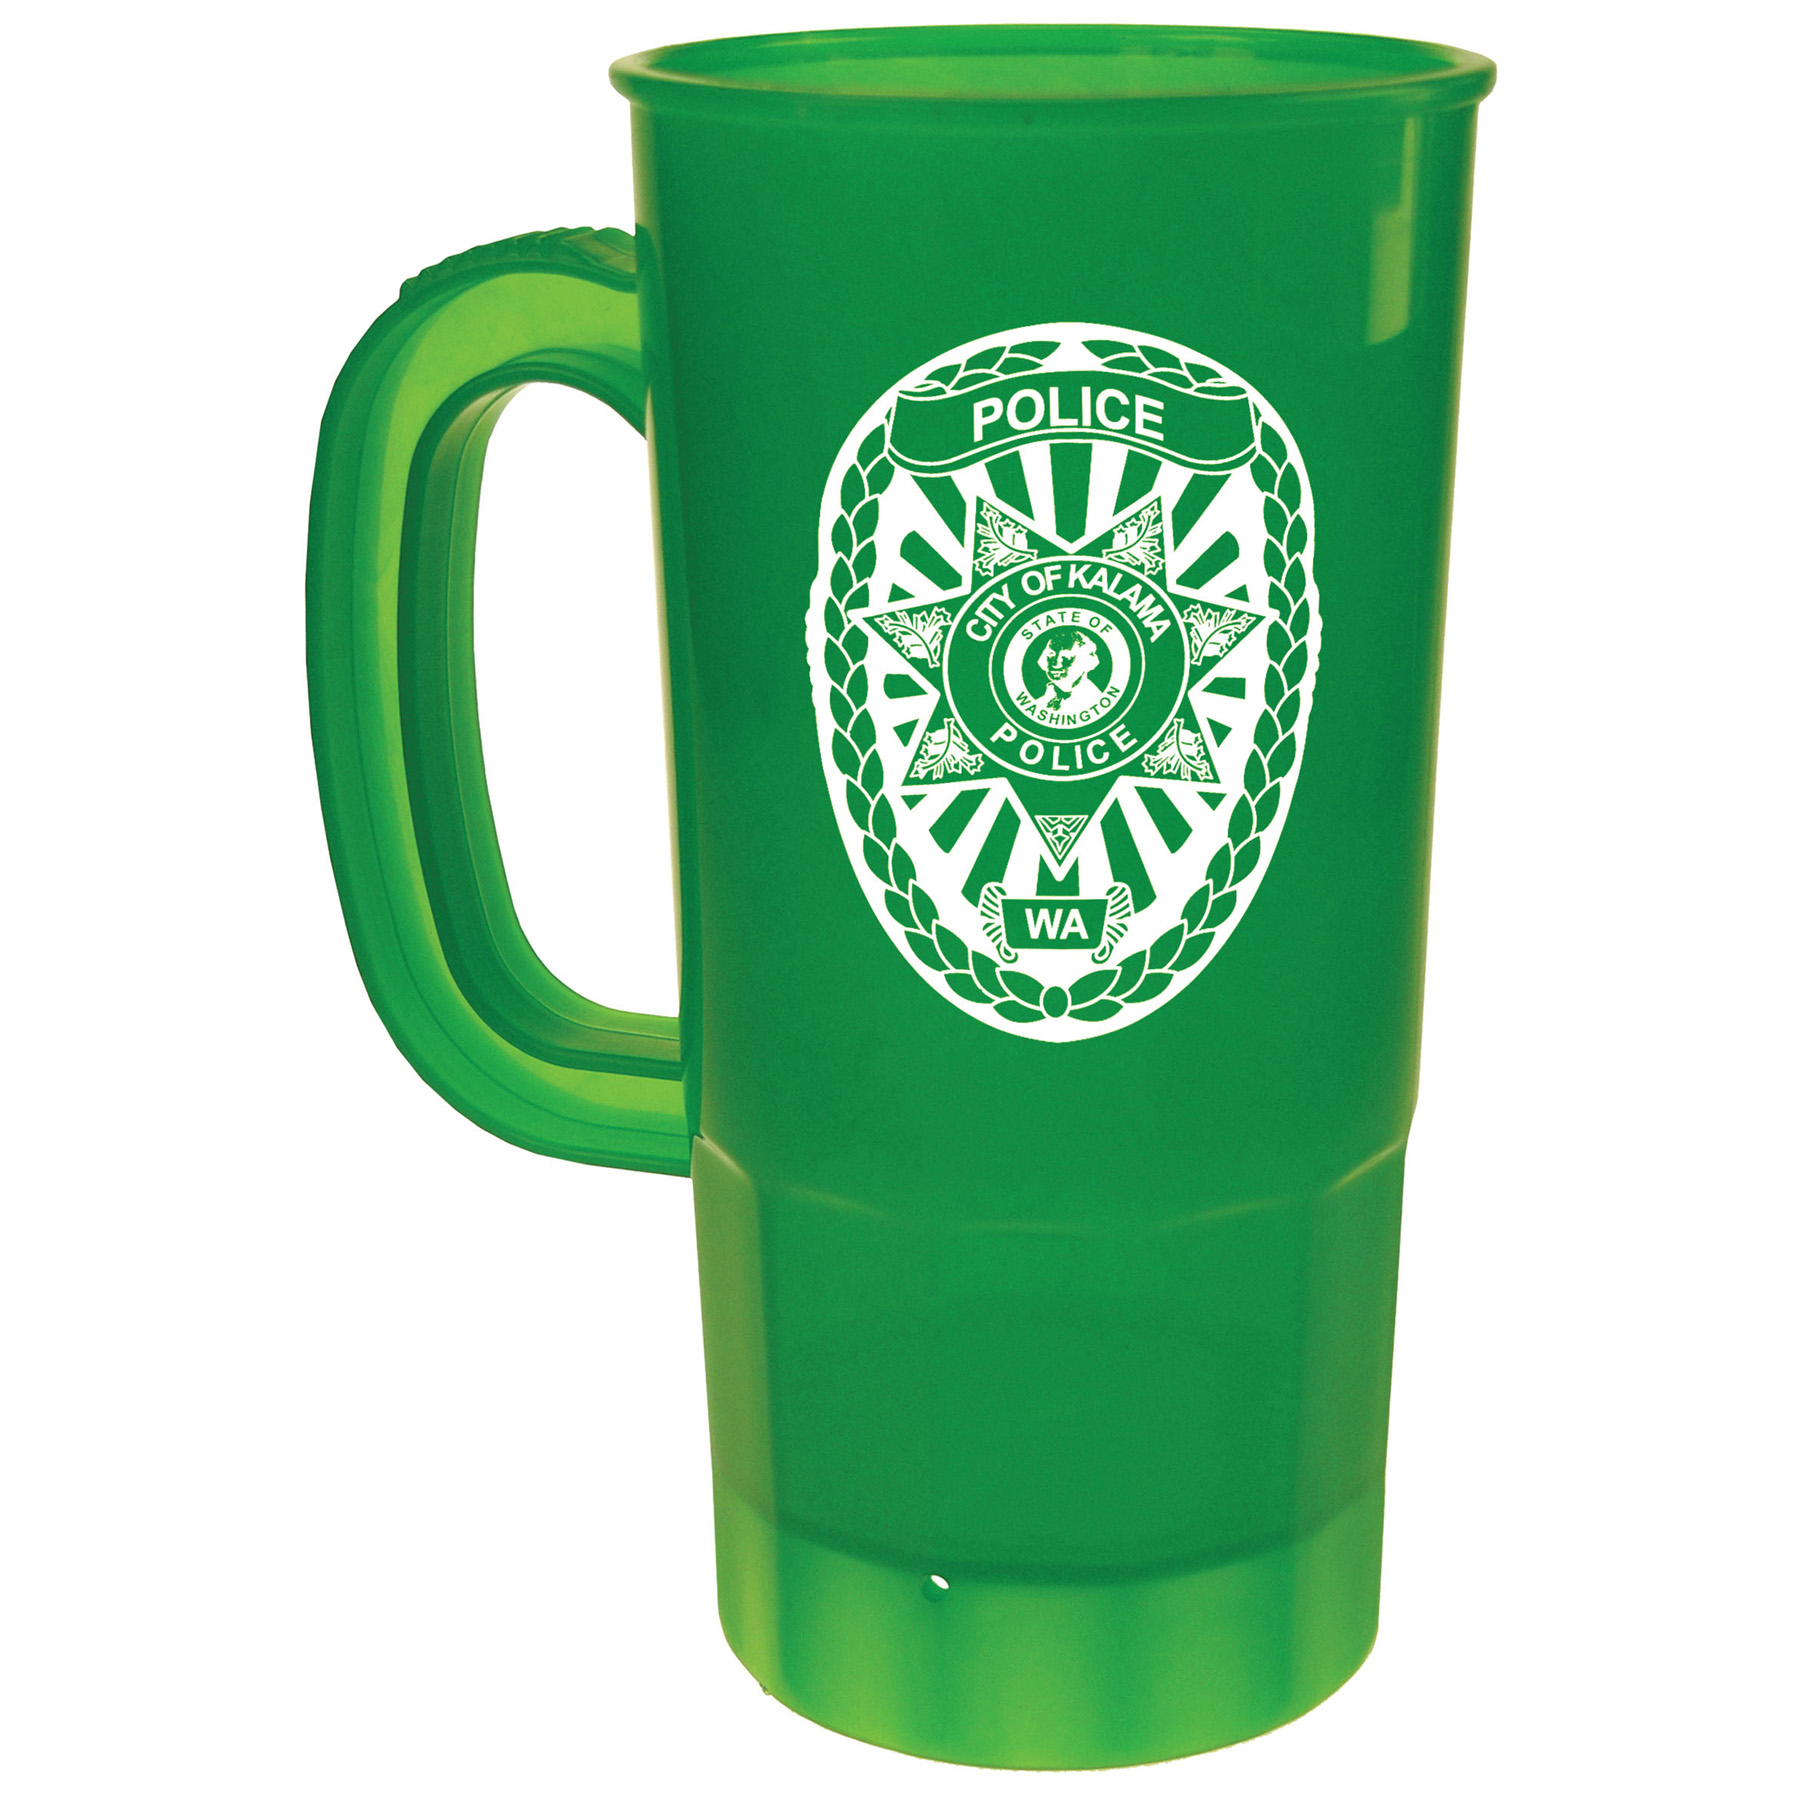 22 Oz. Stein Mug, 203-K, One Colour Imprint